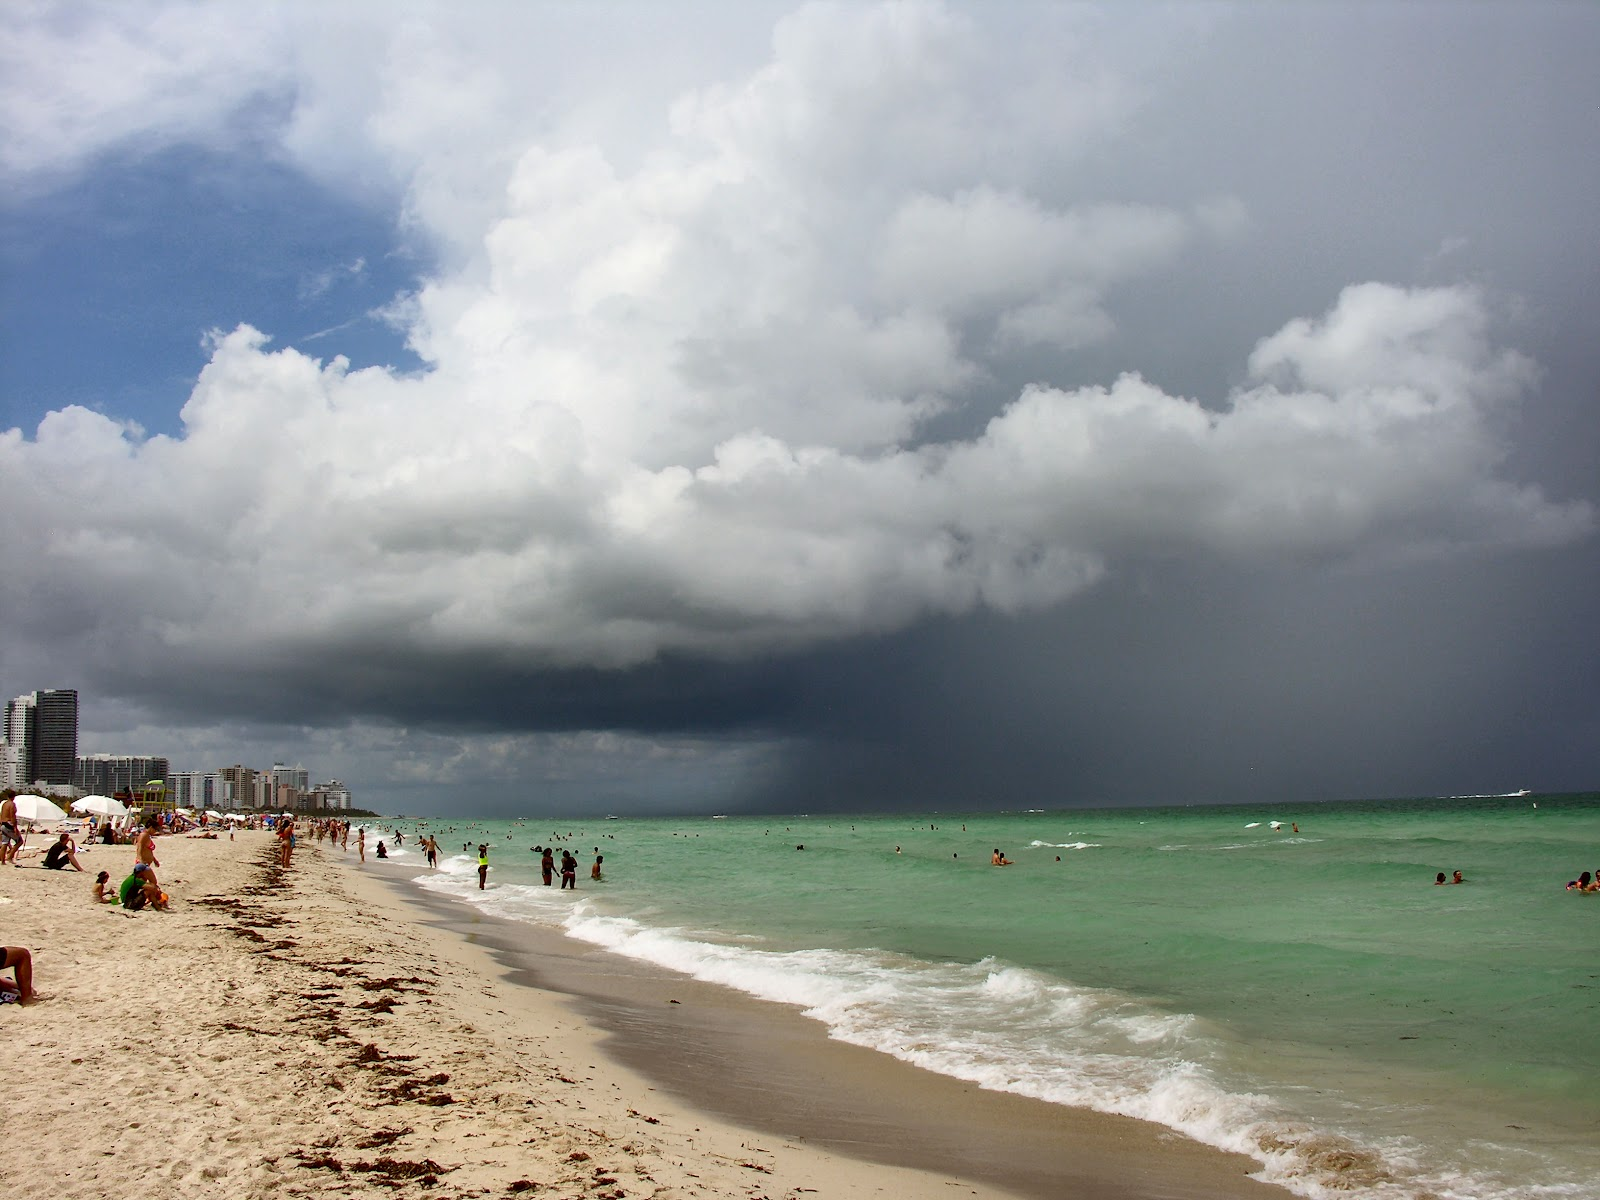 Worst thunderstorm in Miami ever - YouTube